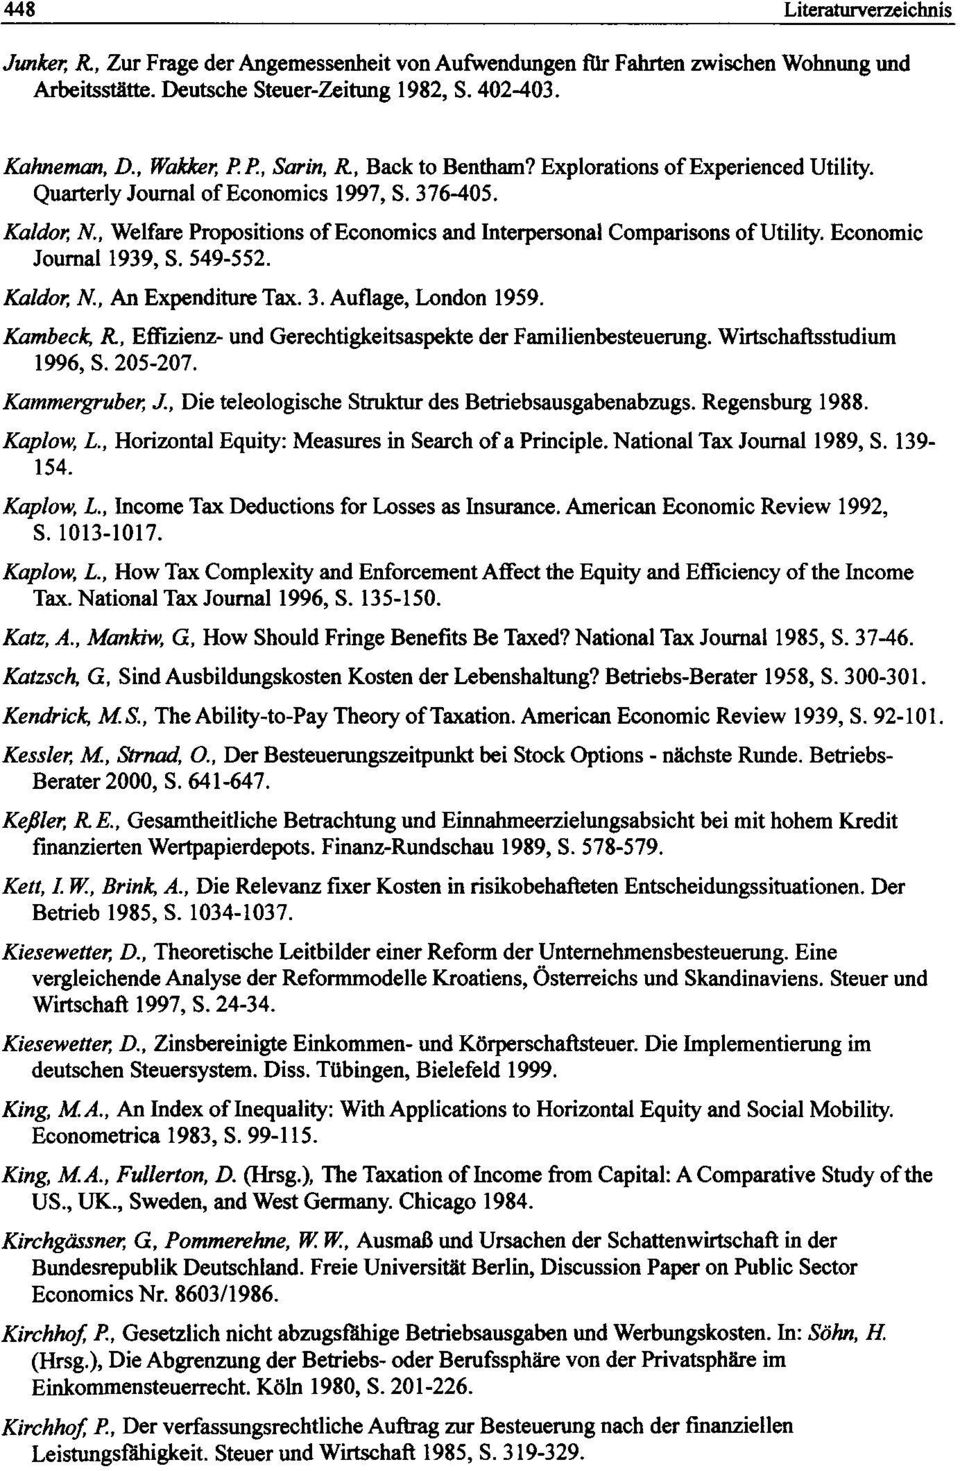 , Welfare Propositions of Economics and Interpersonal Comparisons of Utility. Economic Journal 1939, S. 549-552. Kaldor, N., An Expenditure Tax. 3. Auflage, London 1959.